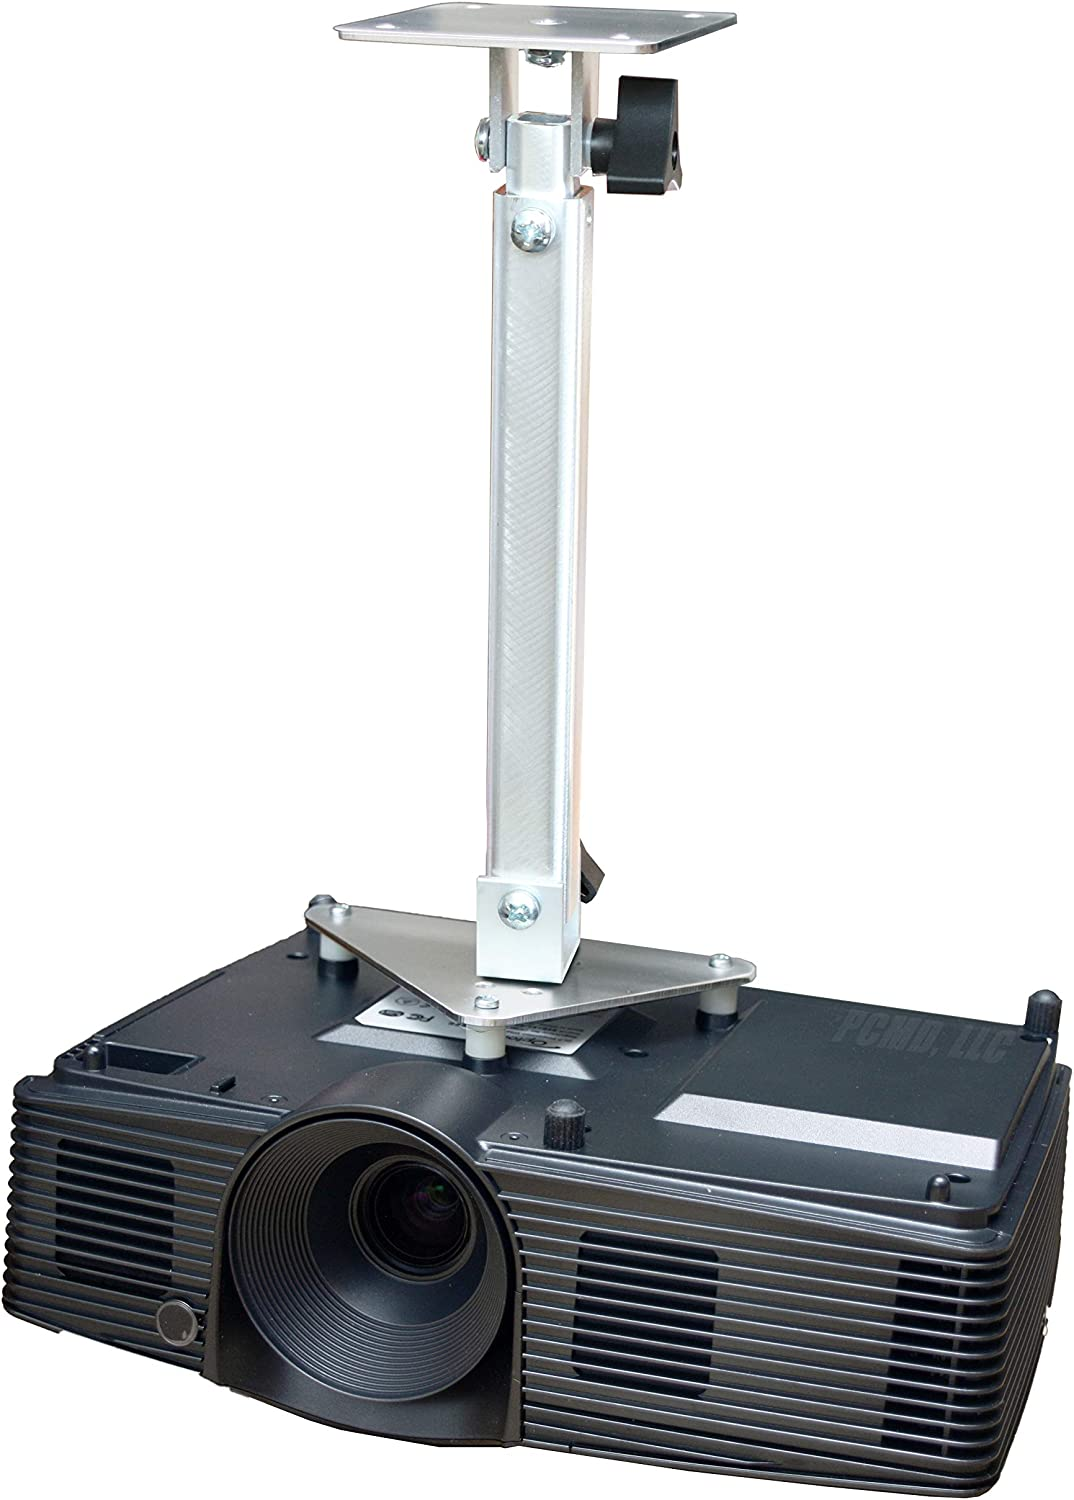 PCMD LLC. Projector Ceiling Mount Compatible Save money DH401 Charlotte Mall with Optoma